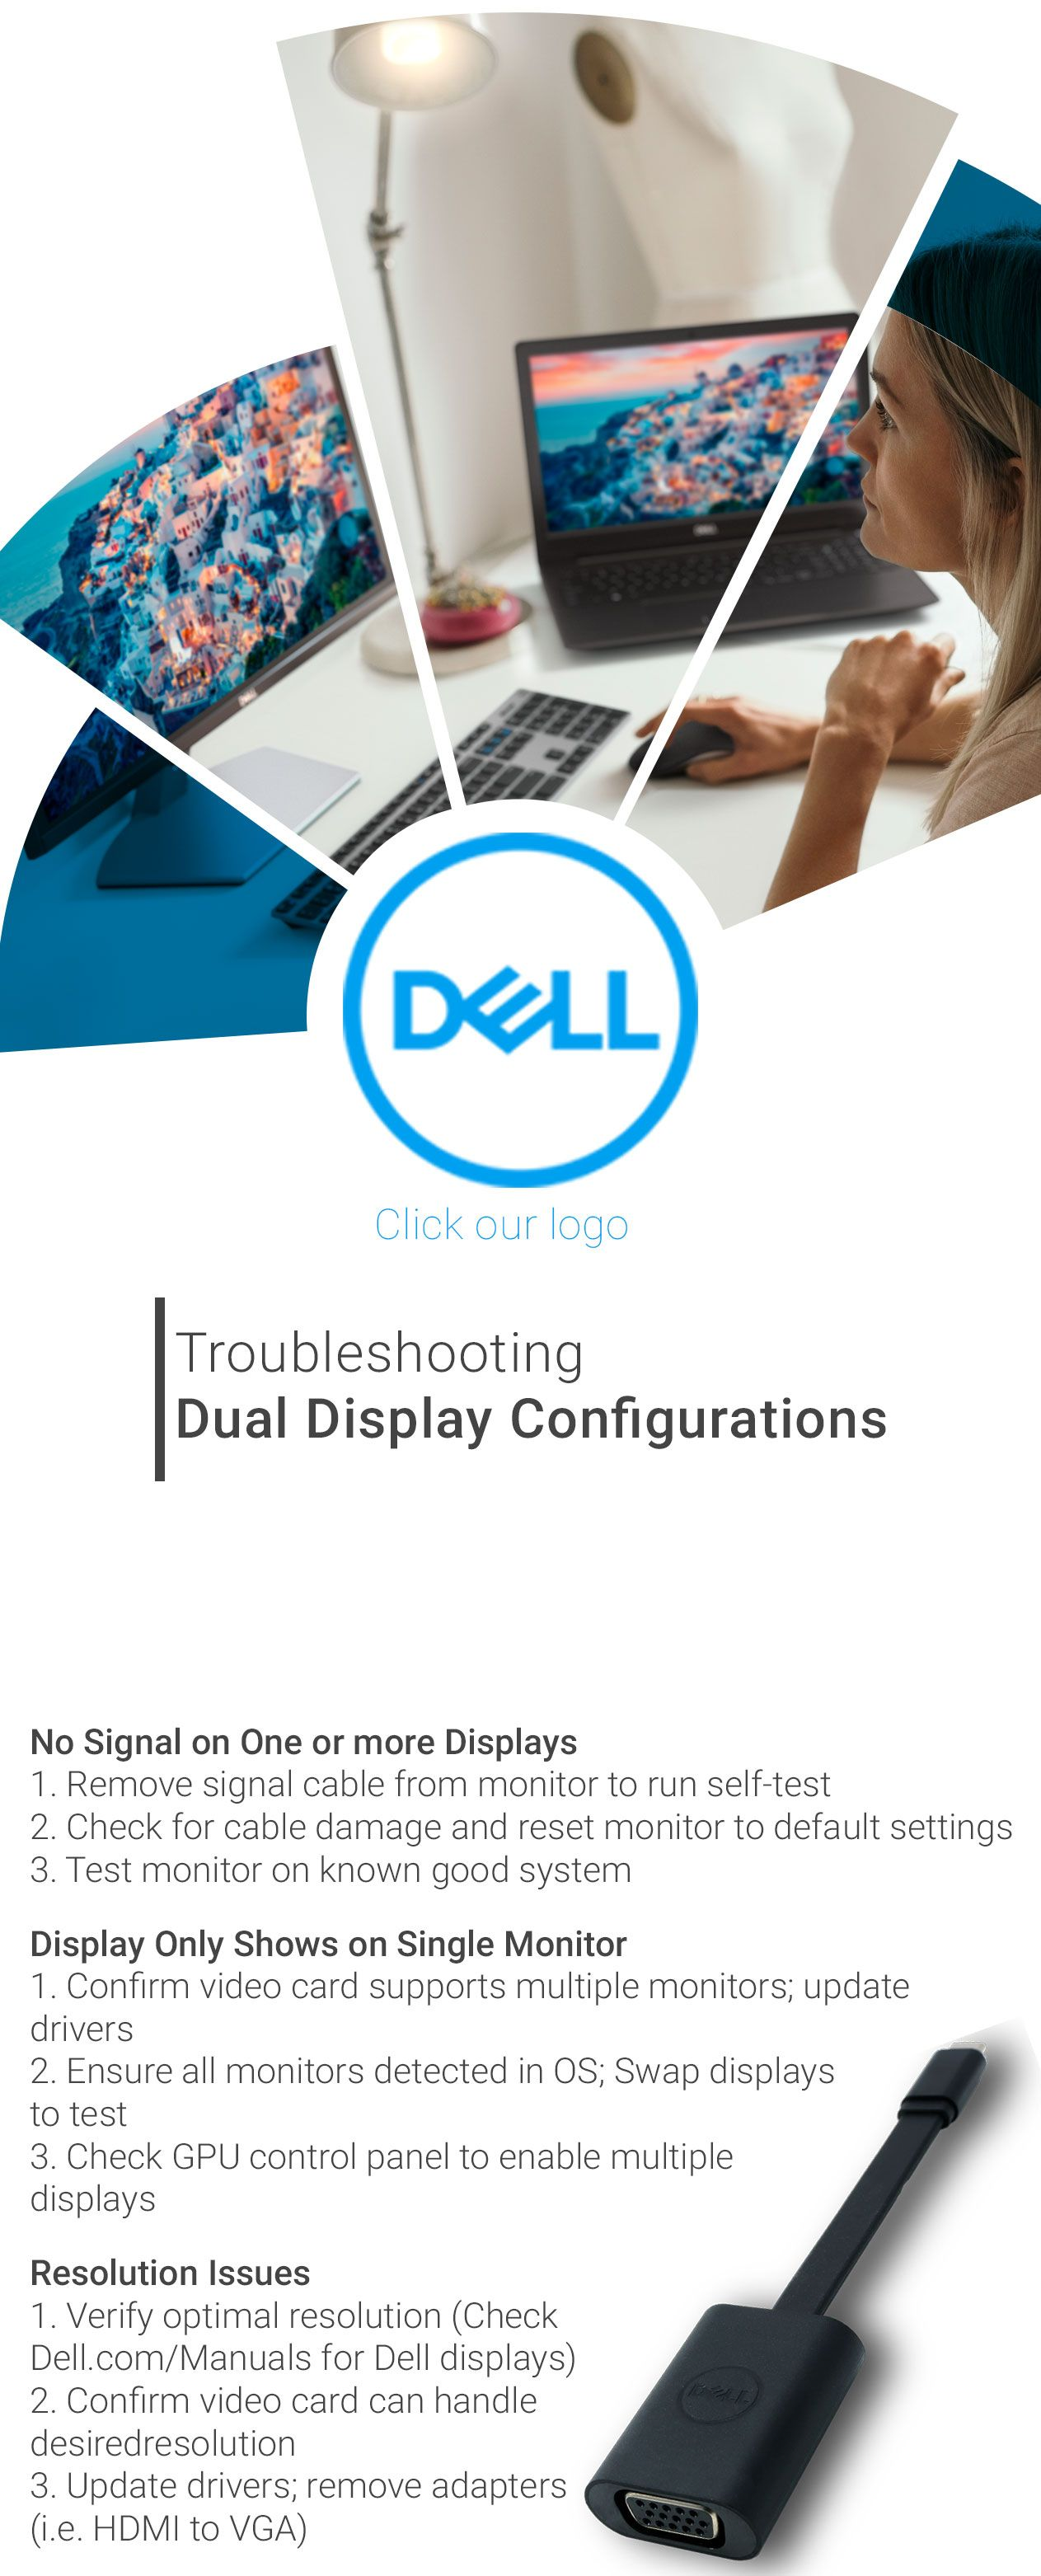 Having a problem with one of the monitors in your dual